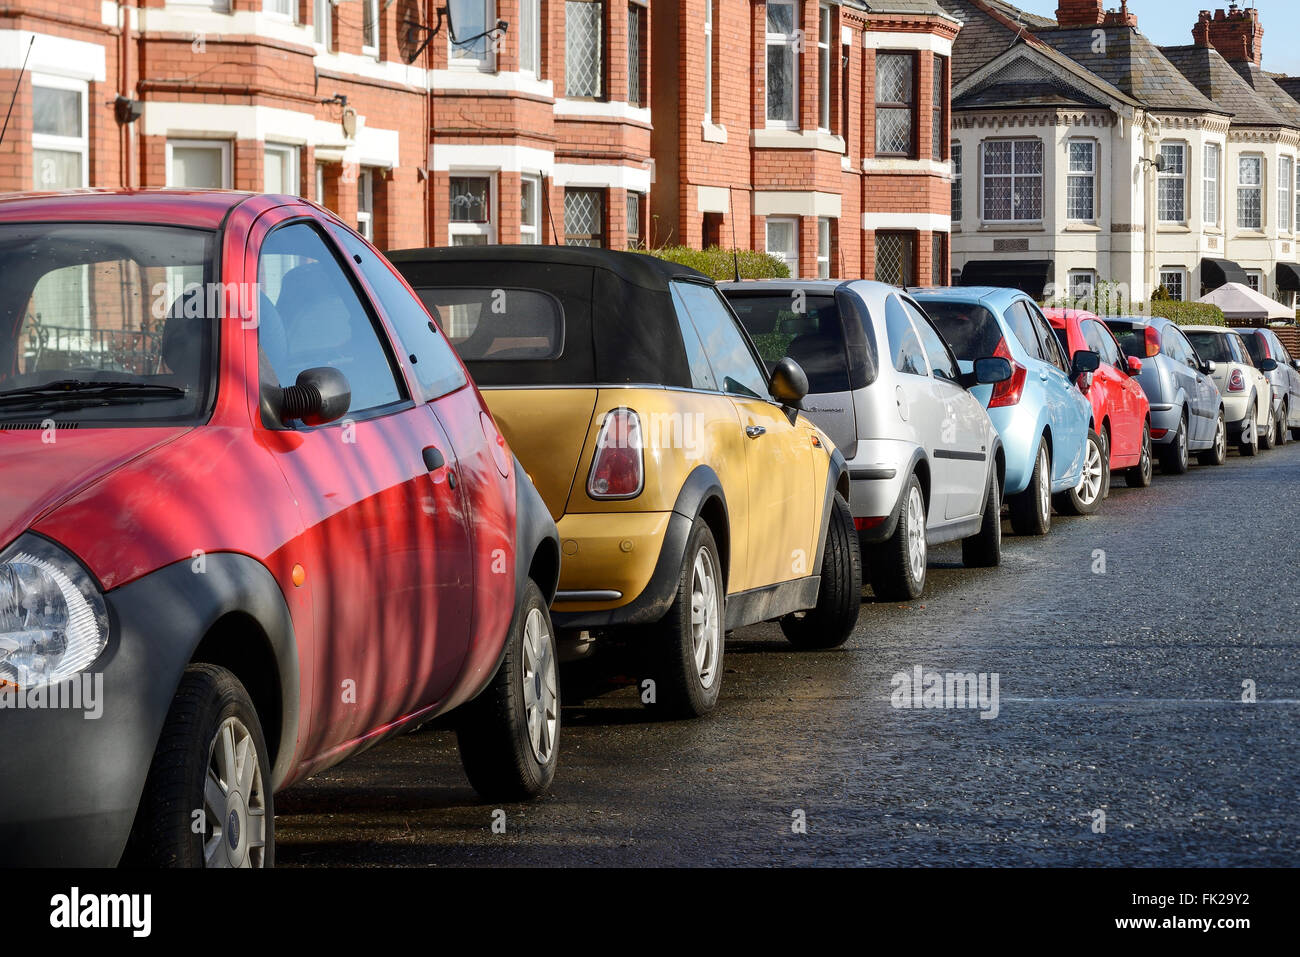 Cars parked on the side of a road - Stock Image